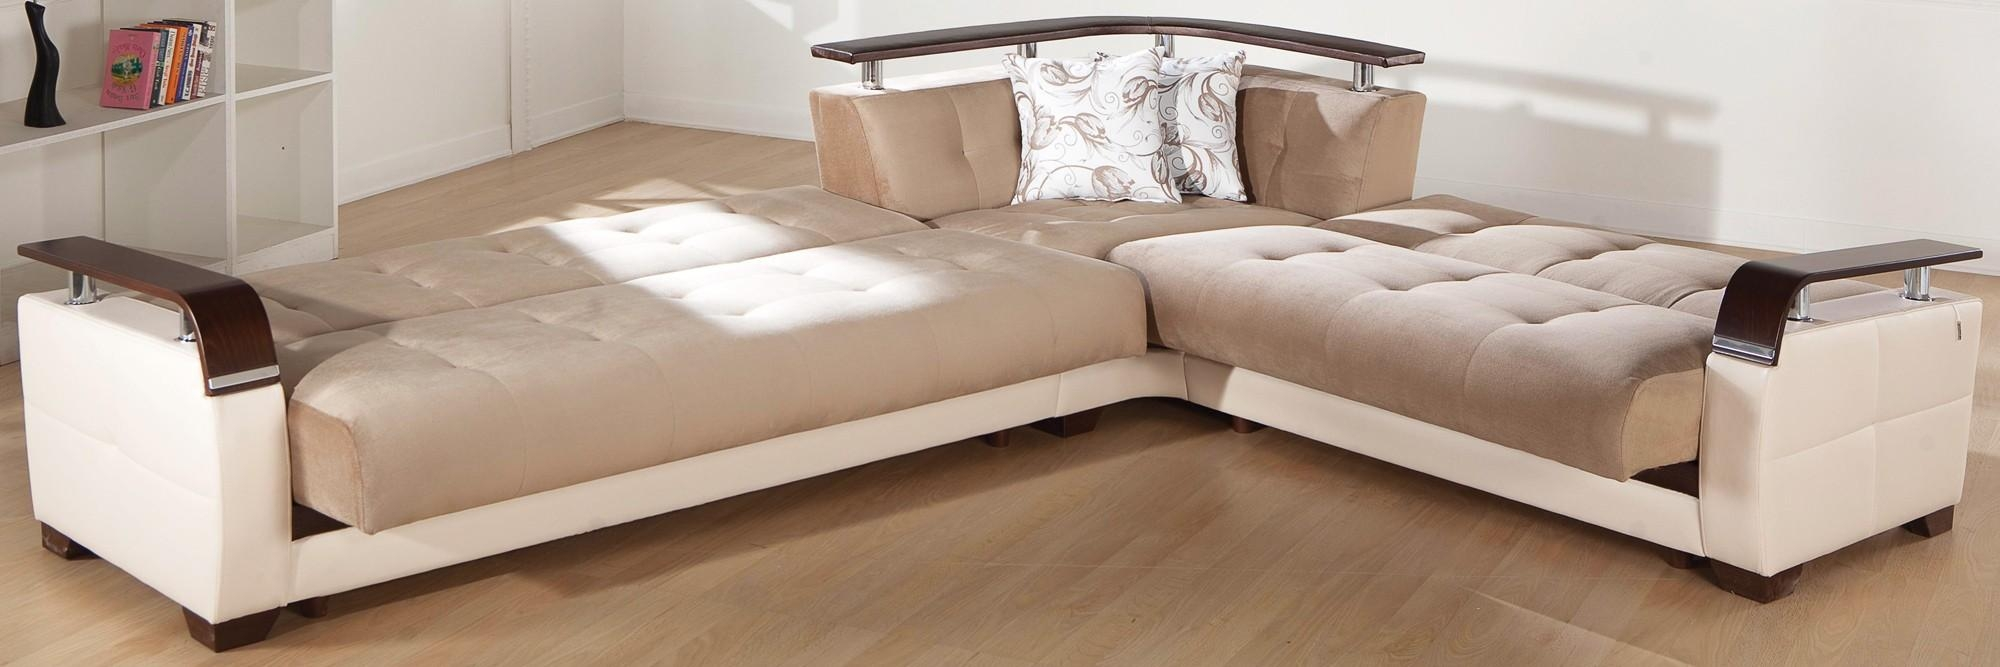 Natural Sectional Sofa Sleeper ( within Sleeper Sectional Sofas